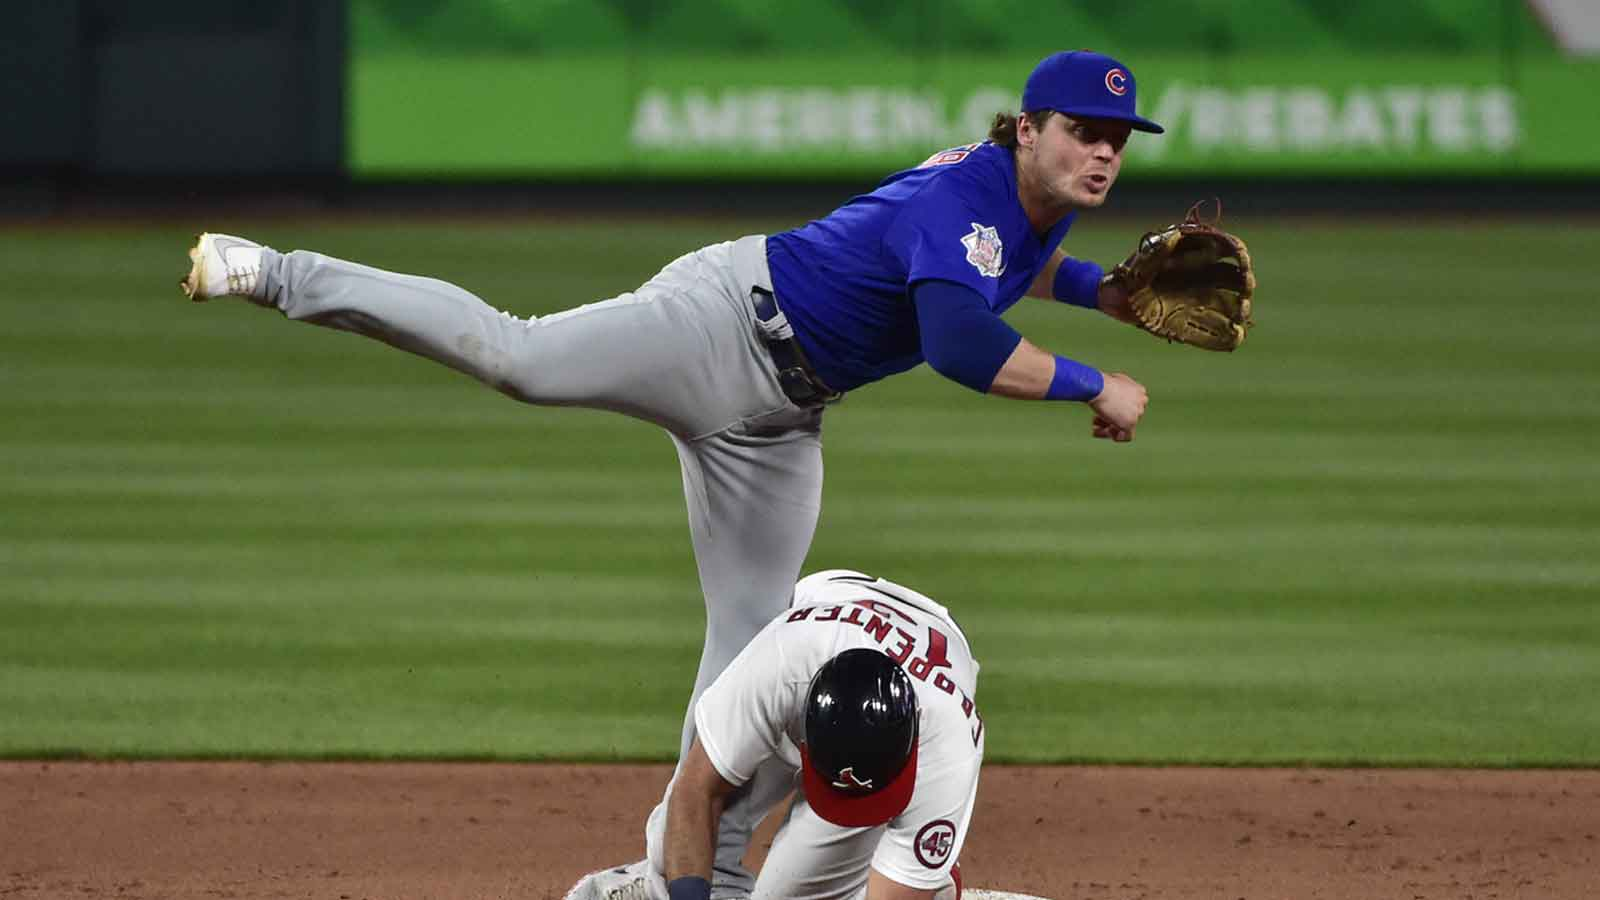 Cubs' Nico Hoerner Ready to Prove Value as Long-Term Shortstop